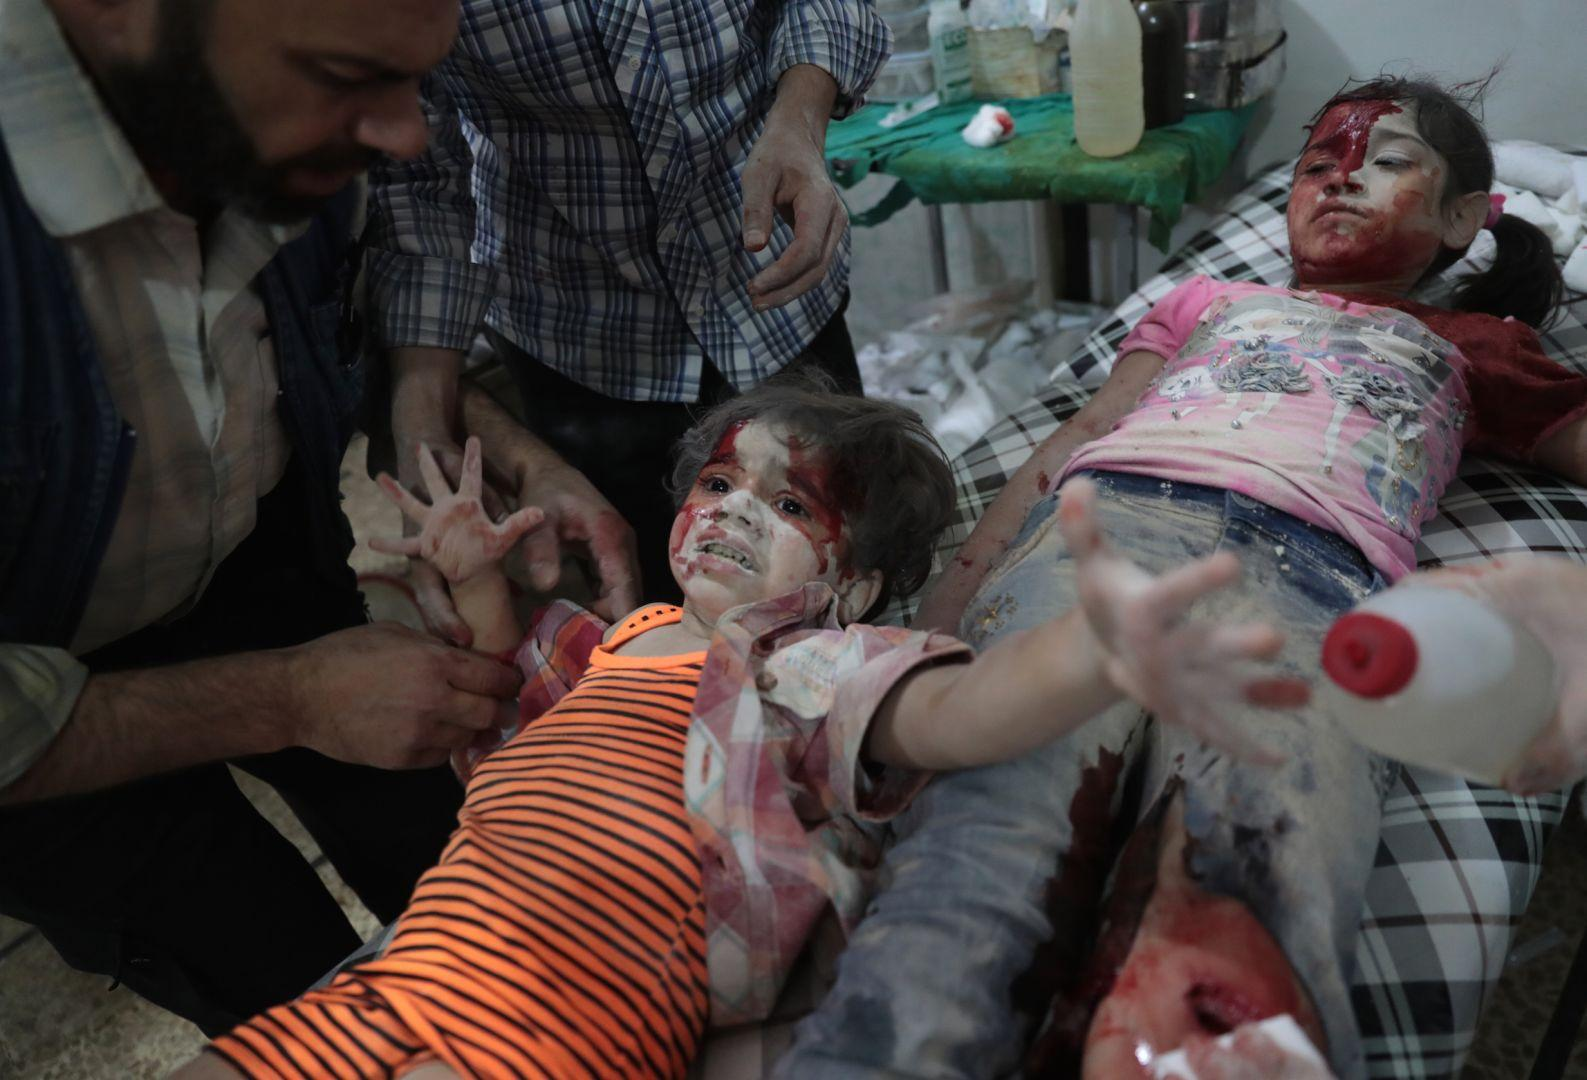 Medics Assist a Wounded Girl, Abd Doumany, Syria, The World Press Photo Contest